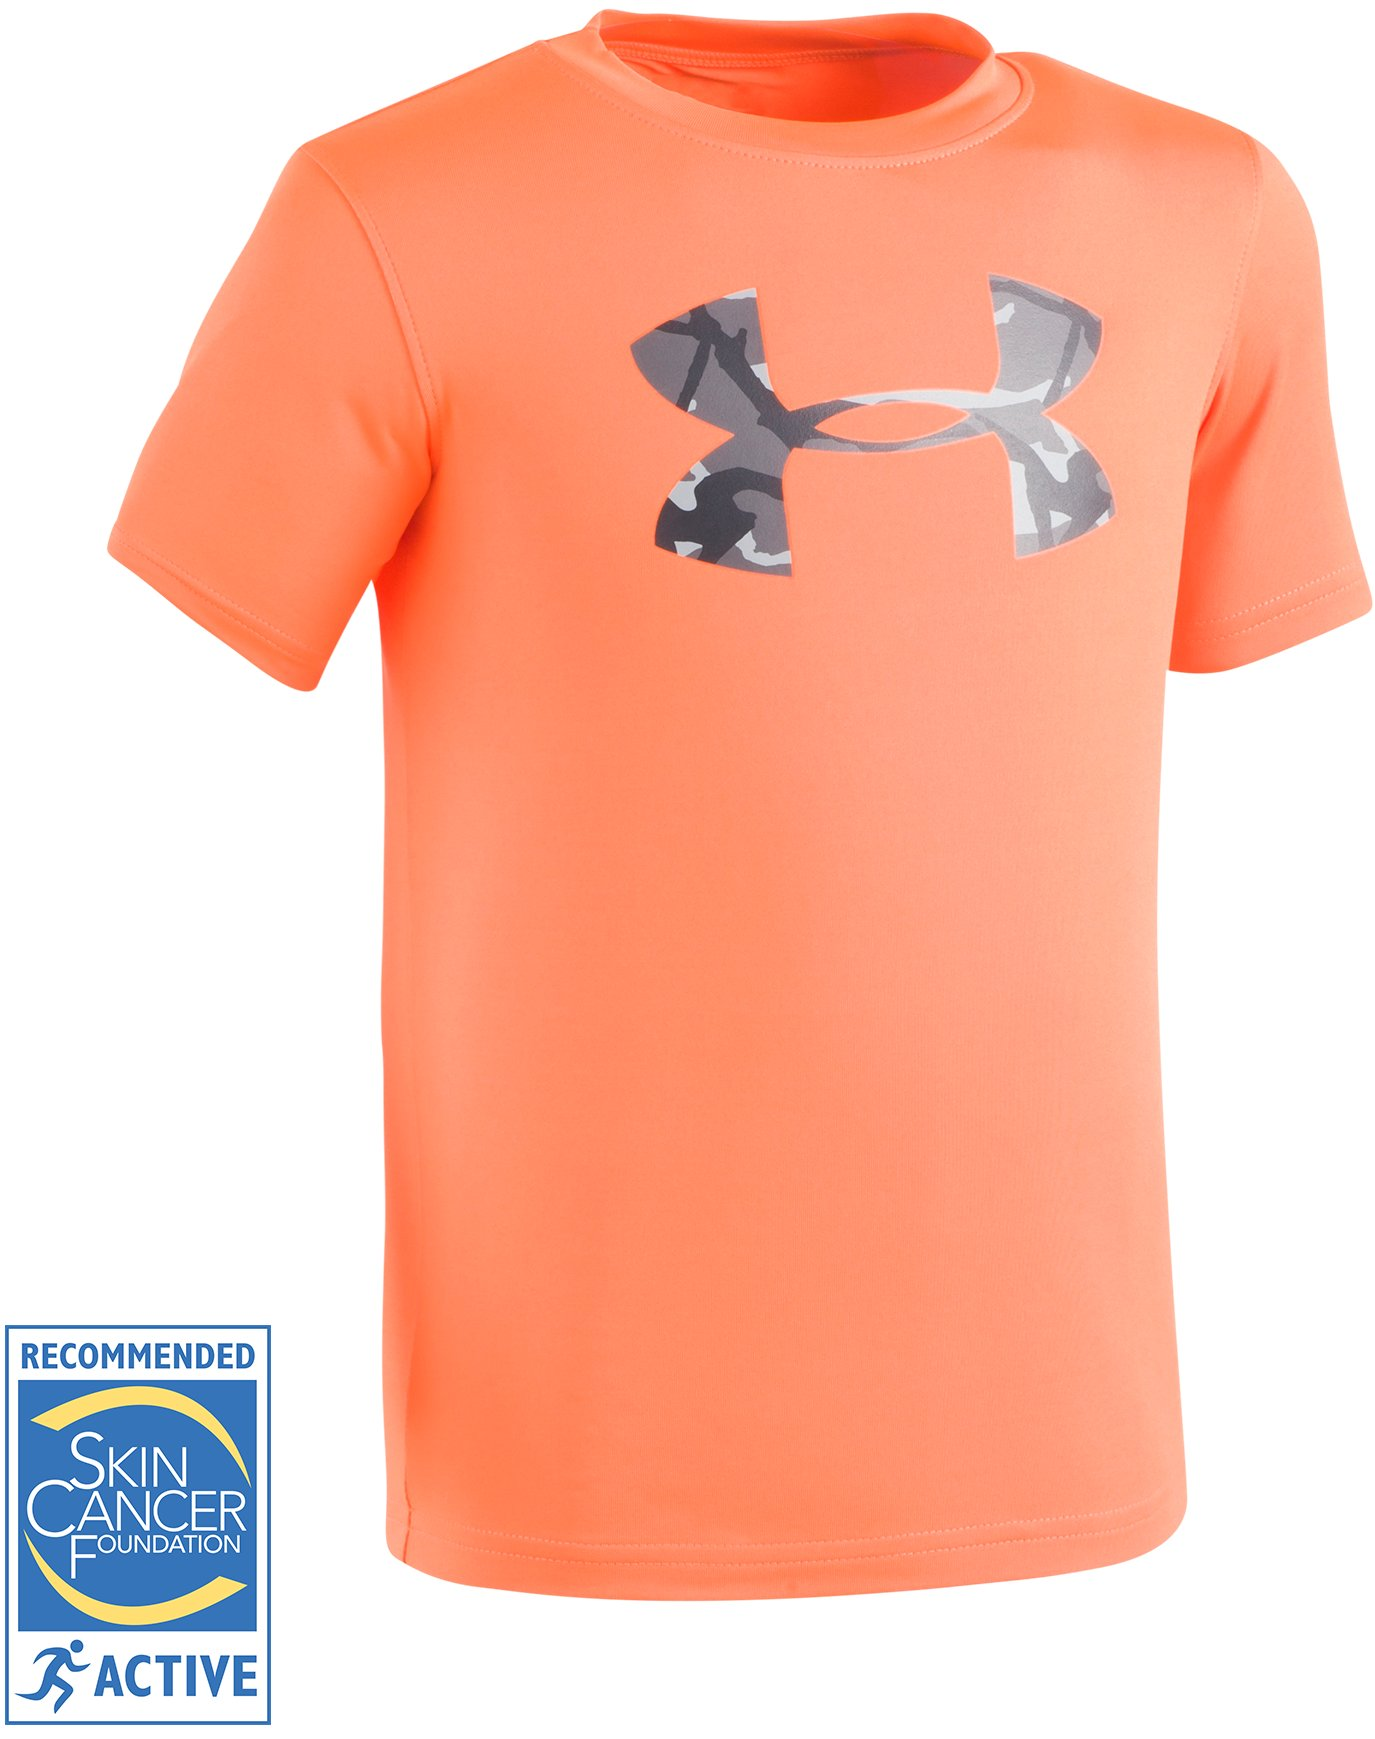 Boys' Toddler UA Anatomic Surf Short Sleeve Shirt, Blaze Orange